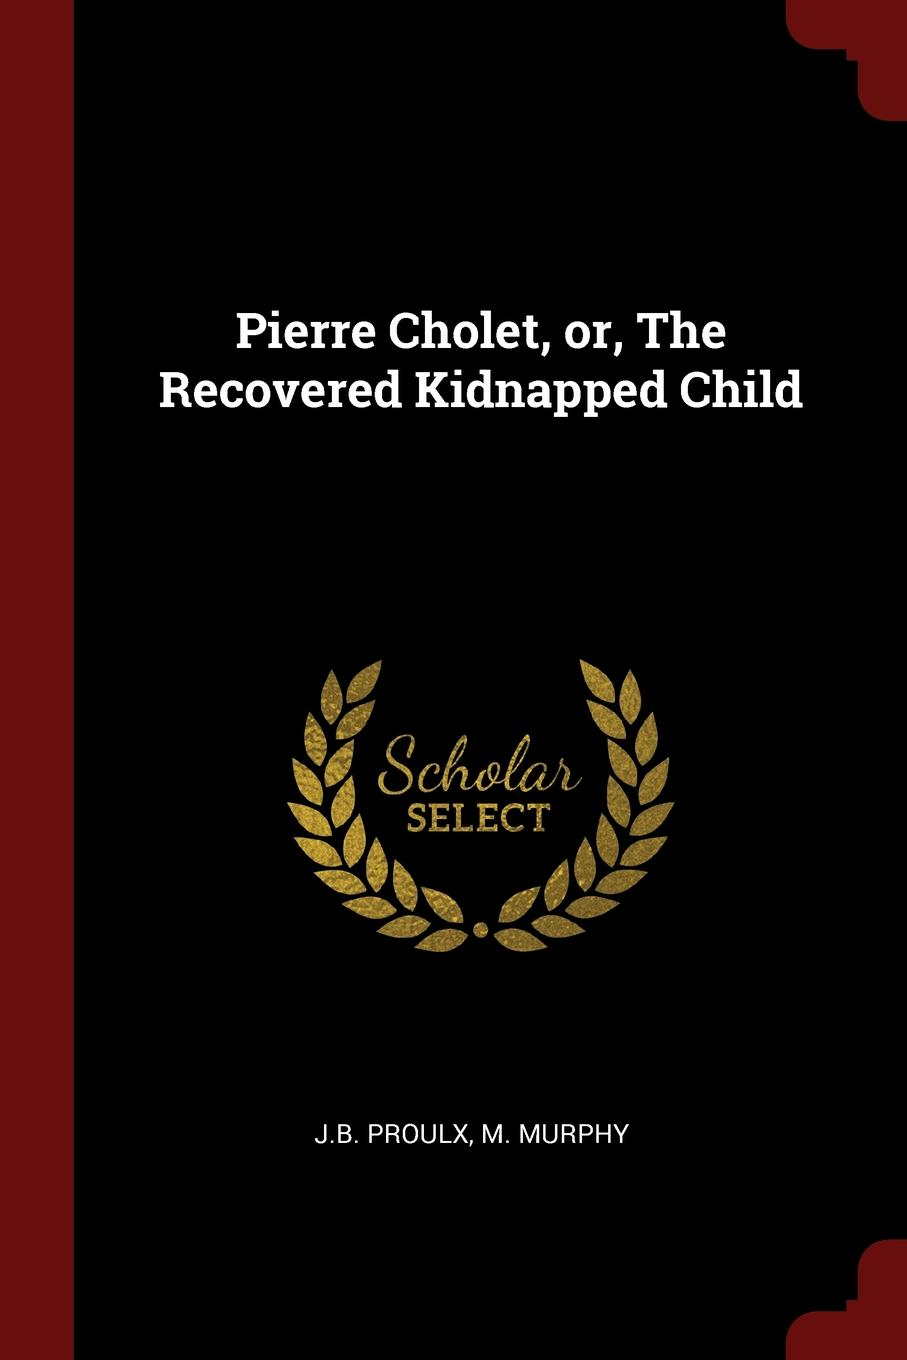 J.B. Proulx, M. Murphy Pierre Cholet, or, The Recovered Kidnapped Child